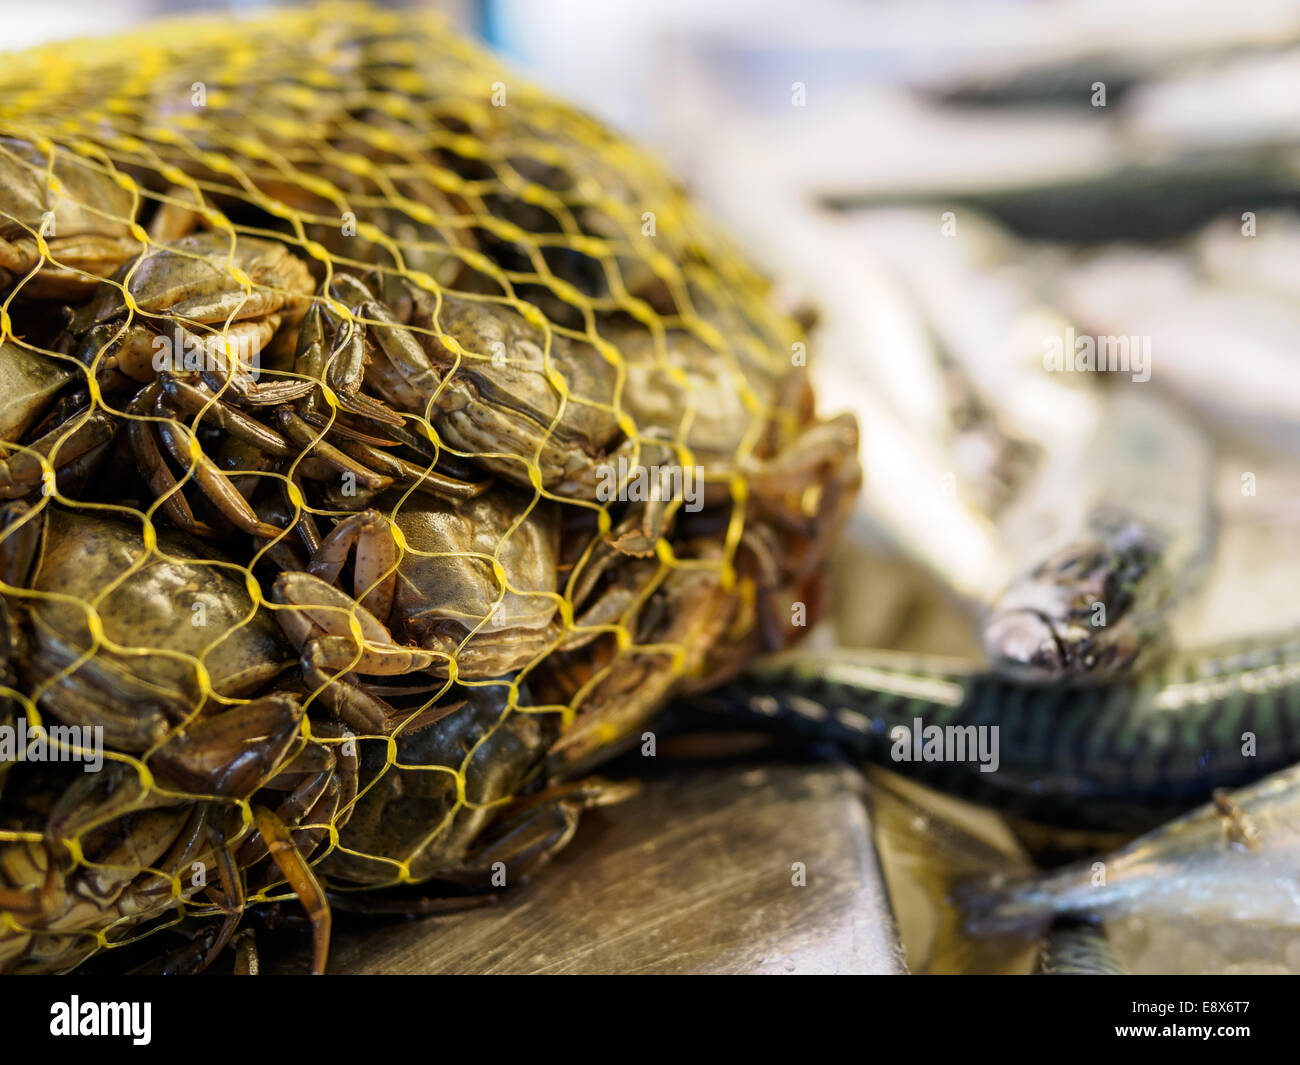 Bag of live shore crabs lying next to eels, on sale at Rialto Market in Venice, Italy. - Stock Image